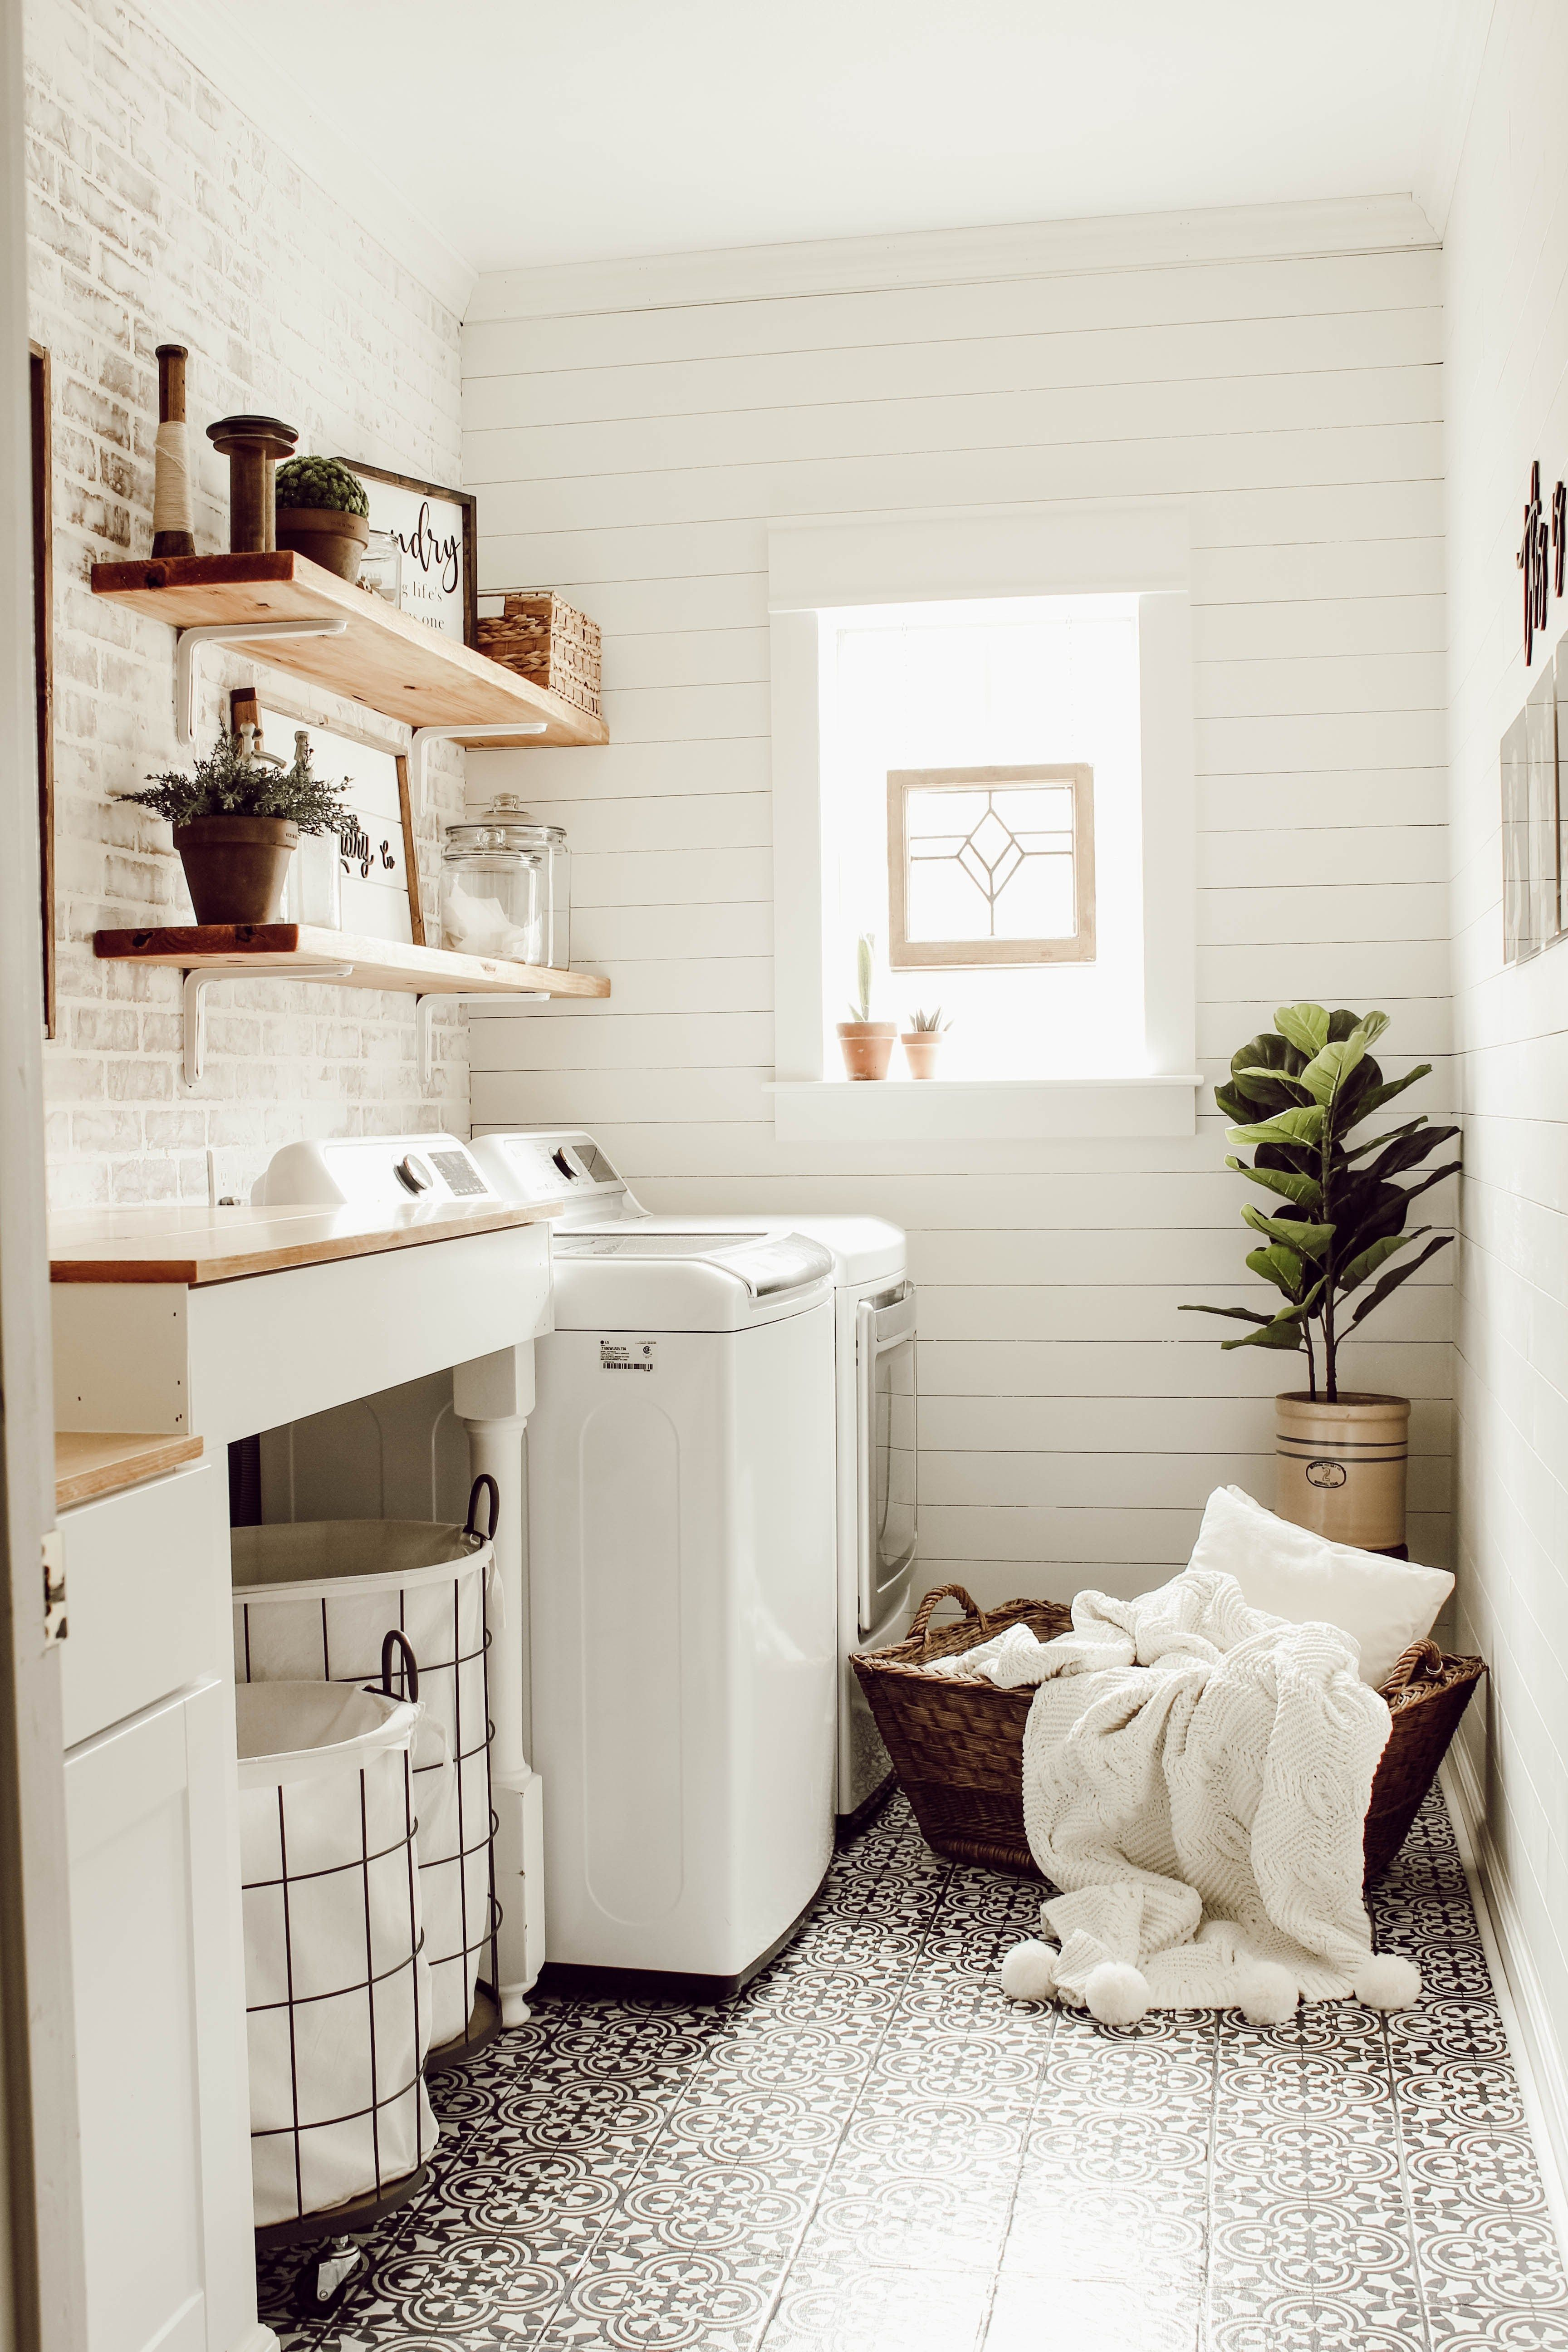 diy faux brick wall in laundry room faux brick walls on laundry room wall covering ideas id=66726